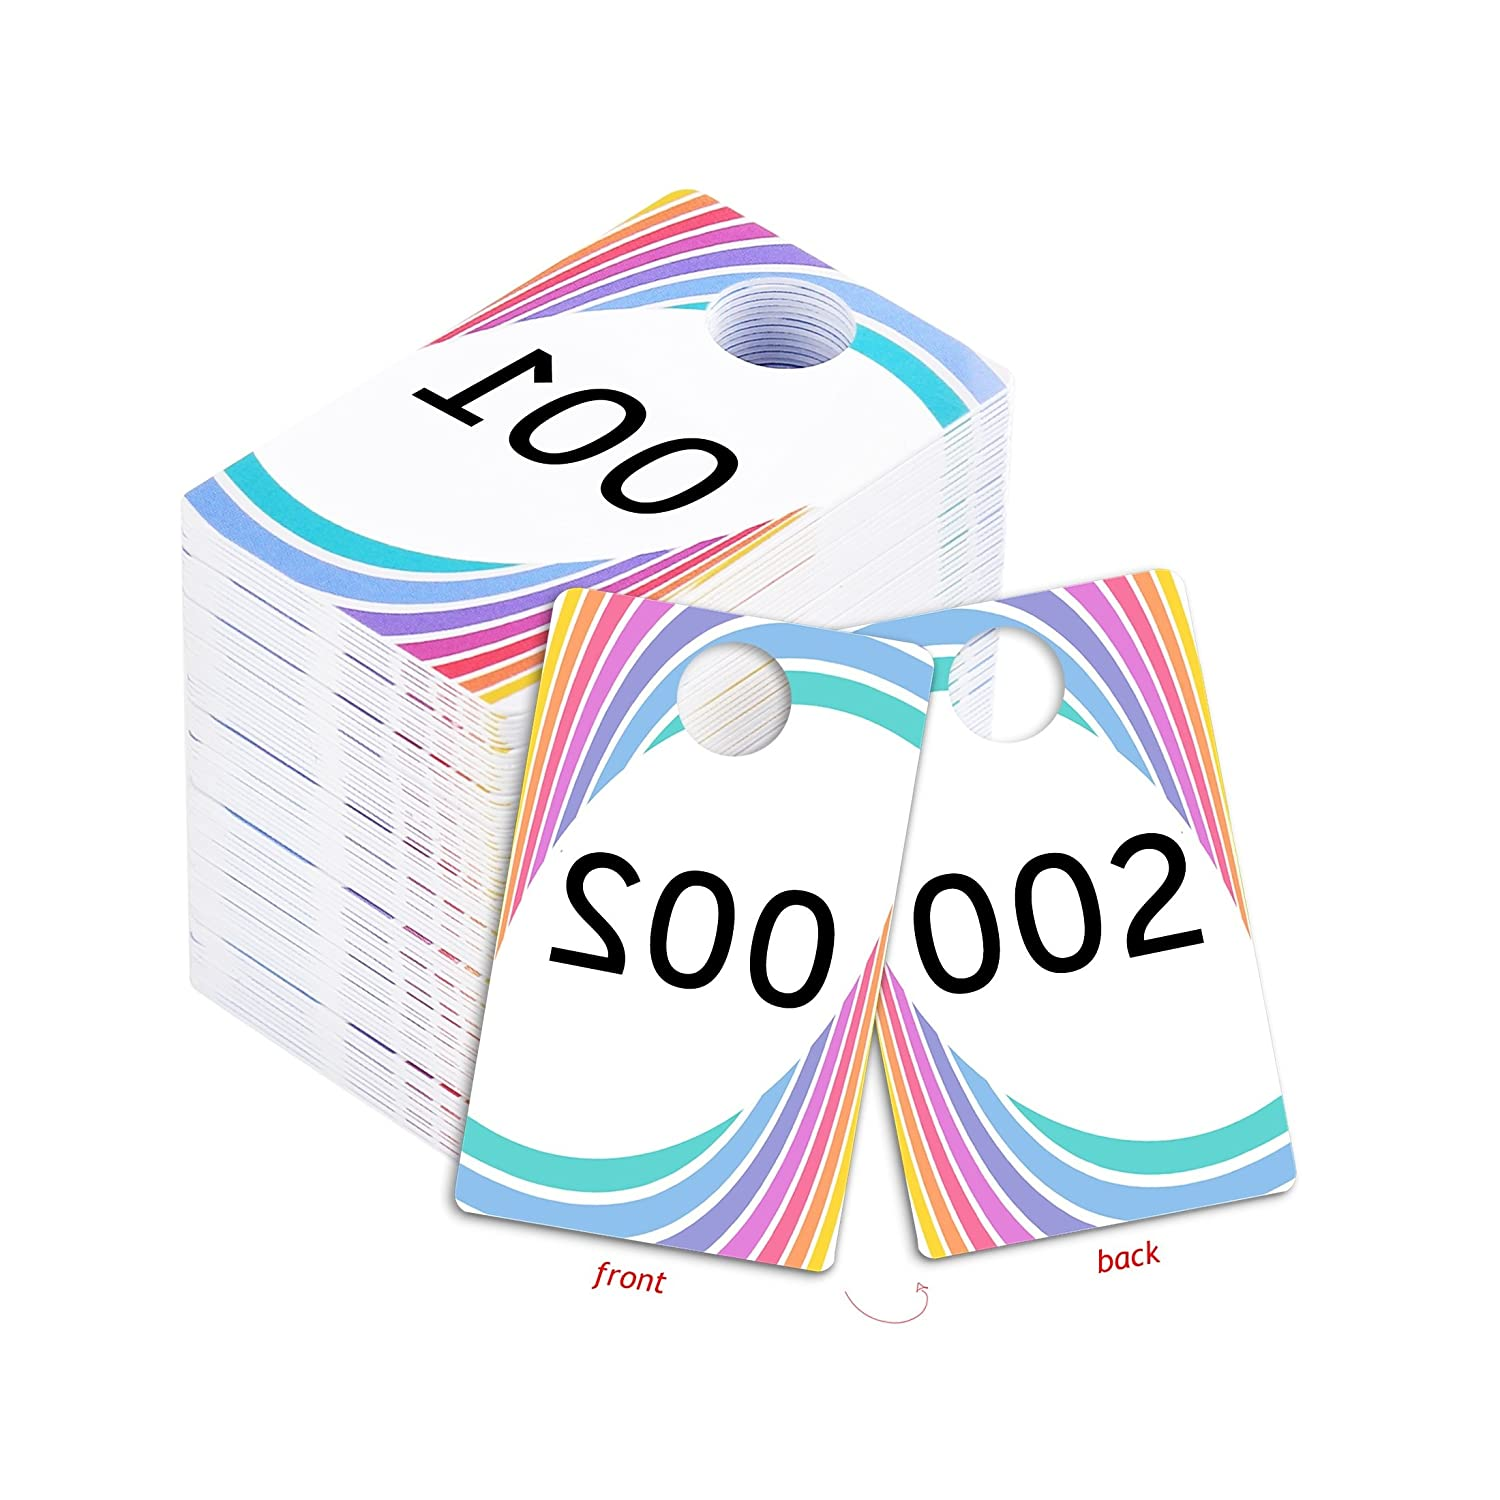 picture regarding Paparazzi Printable Numbers identified as Dwell Sale Plastic Tags, 001-999 Variety Sequence, Reusable Natural and Opposite Replicate Impression Hanger Playing cards, Pick out a Fixed of 100 Quantities, (001-100)